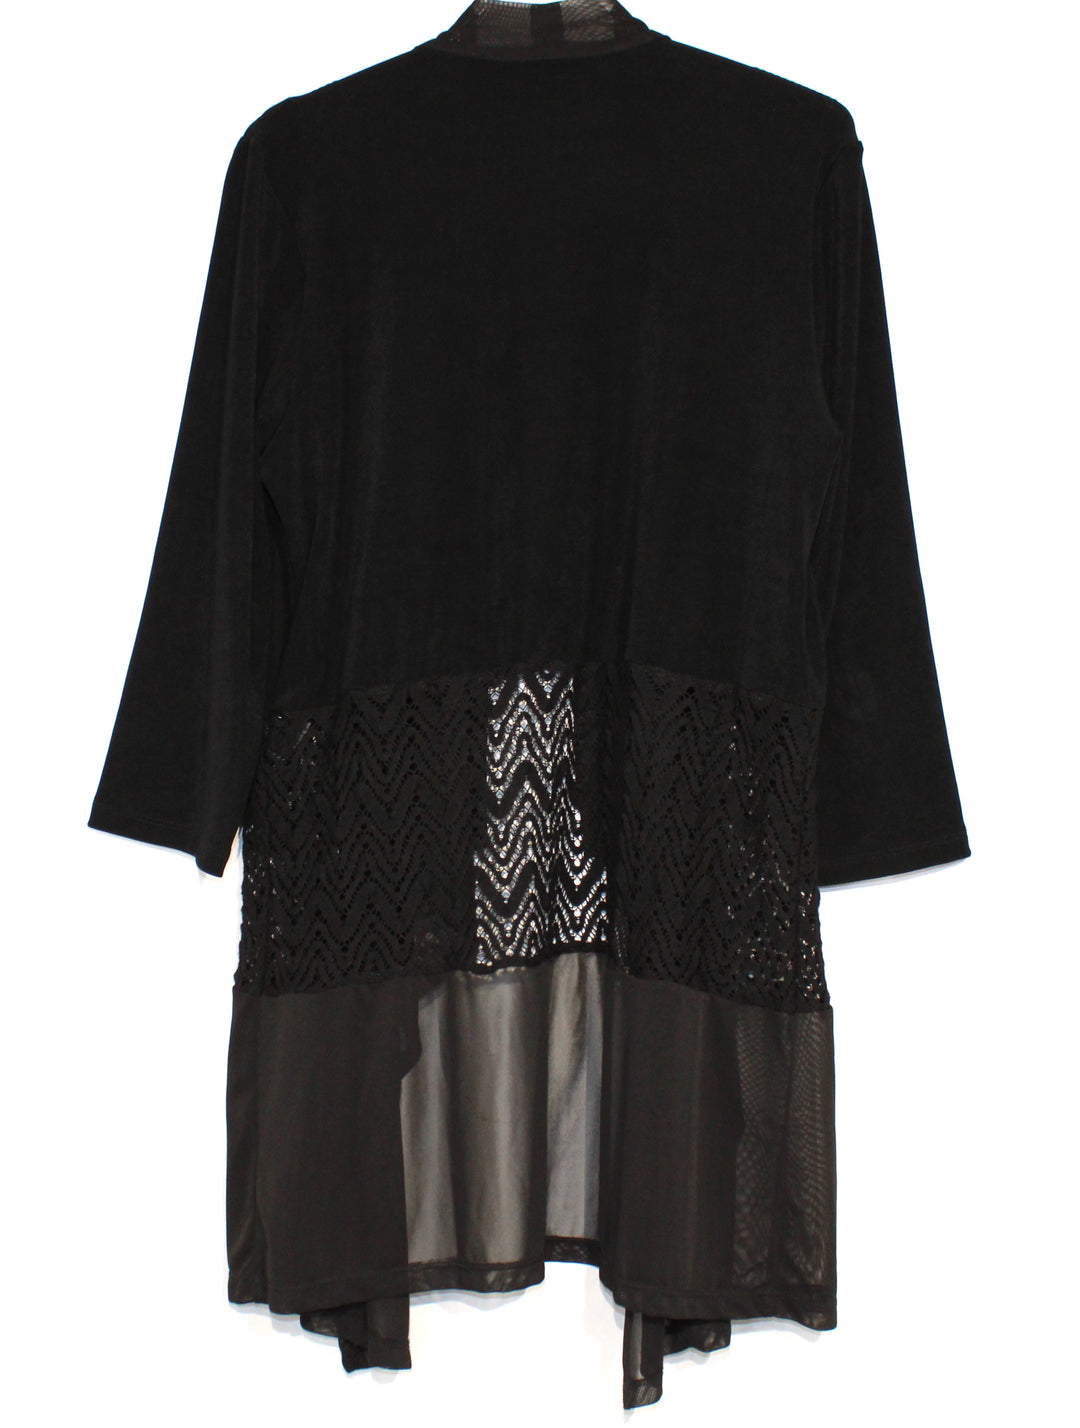 Photo #1 - BRAND: TRAVELERS BY CHICOS <BR>STYLE: COVER UP<BR>COLOR: BLACK <BR>SIZE: M/1<BR>SKU: 262-26211-137654